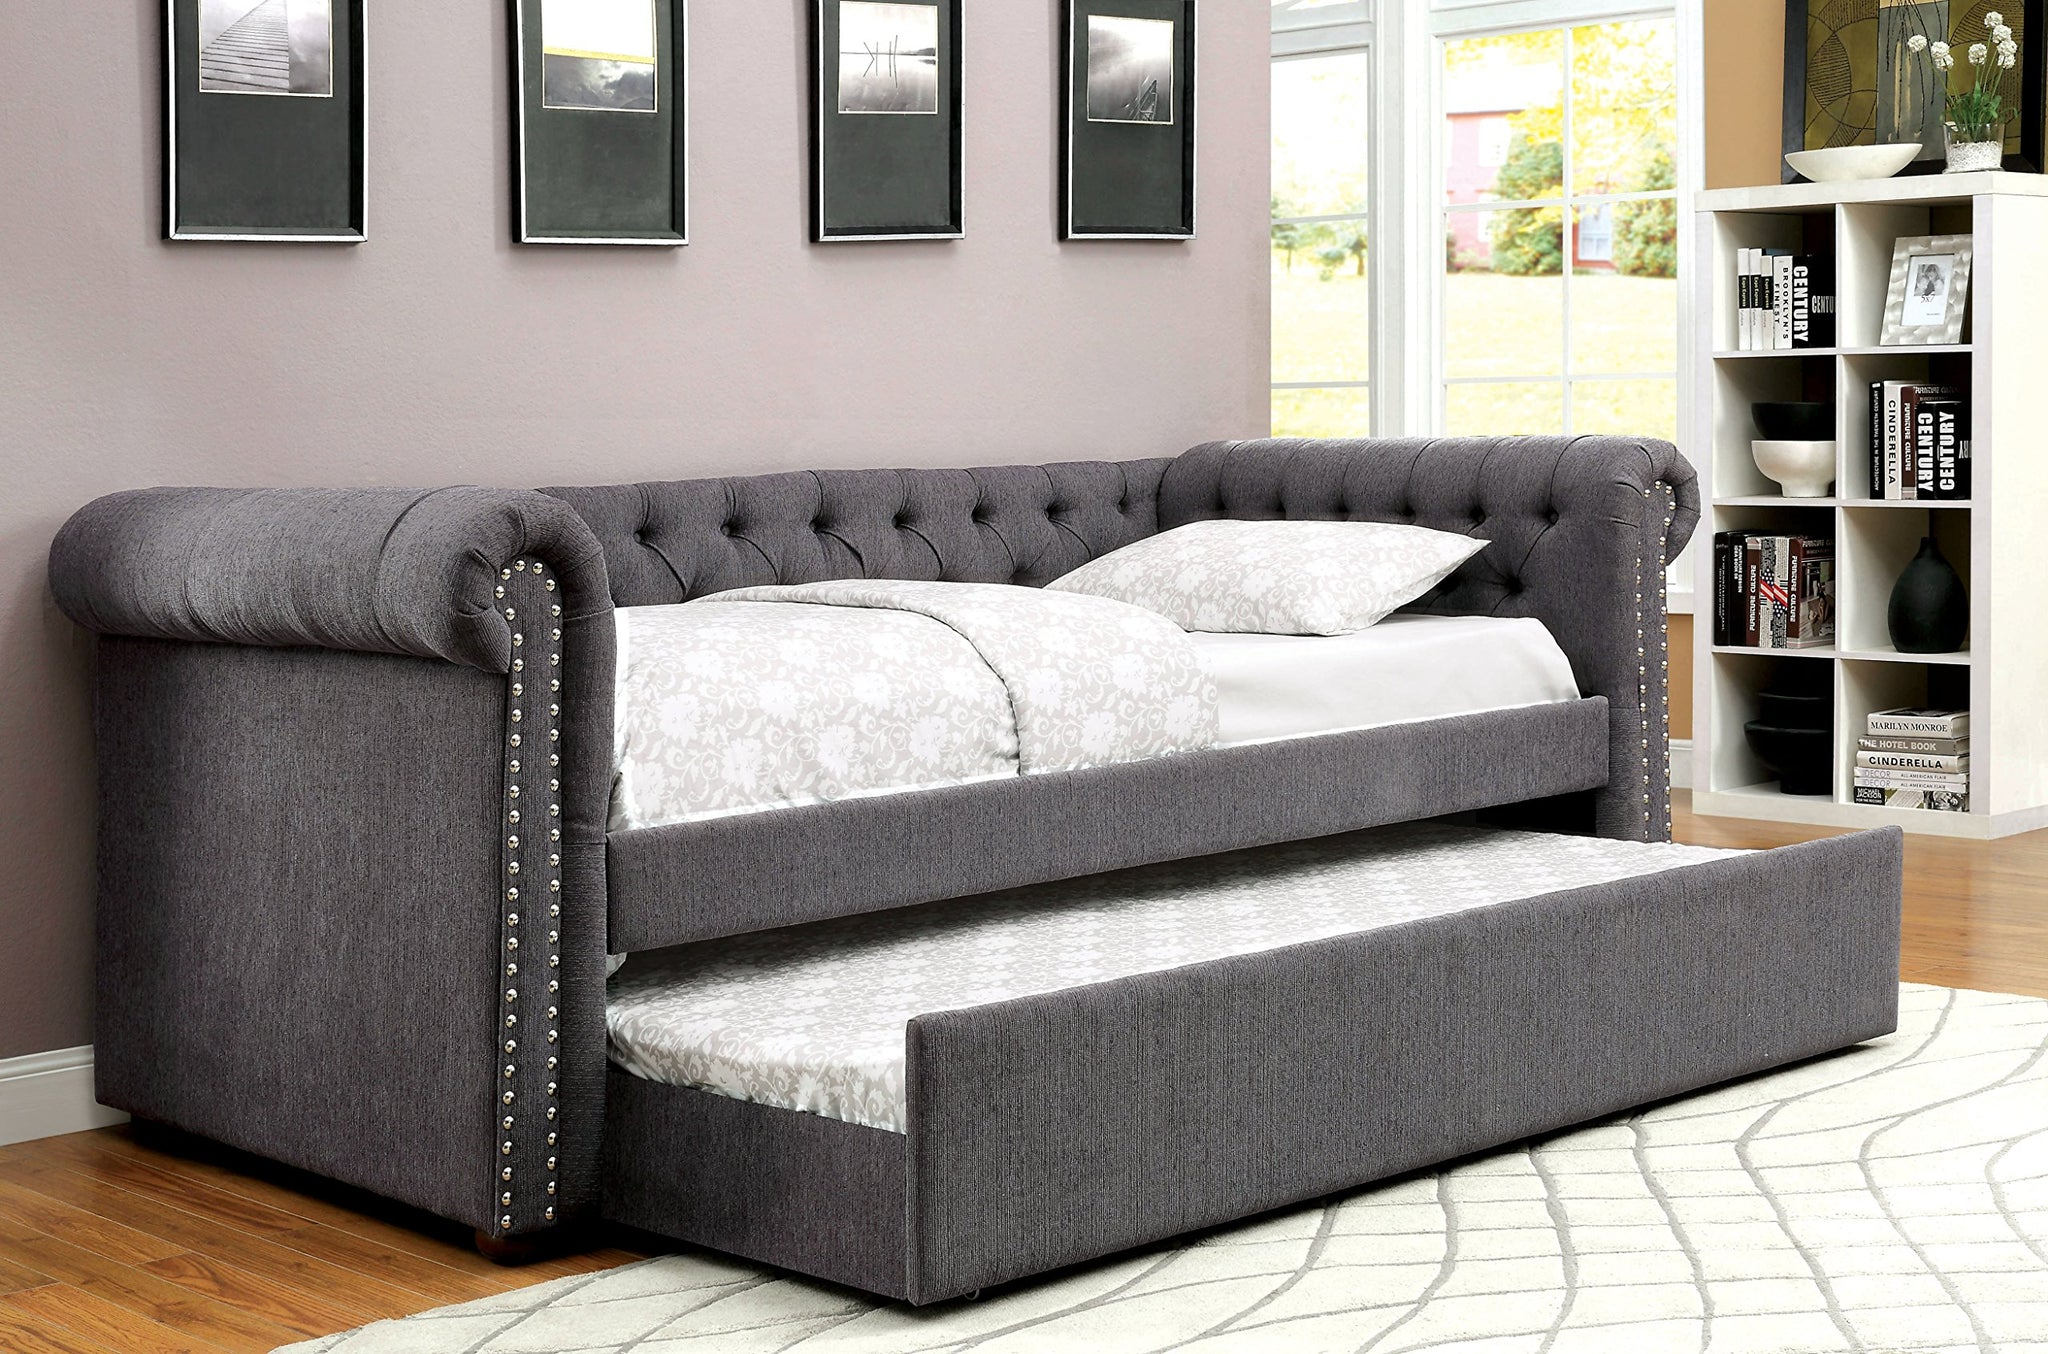 HOMES: Inside + Out IDF-1027GY-F Hunten Daybed, Full, Gray